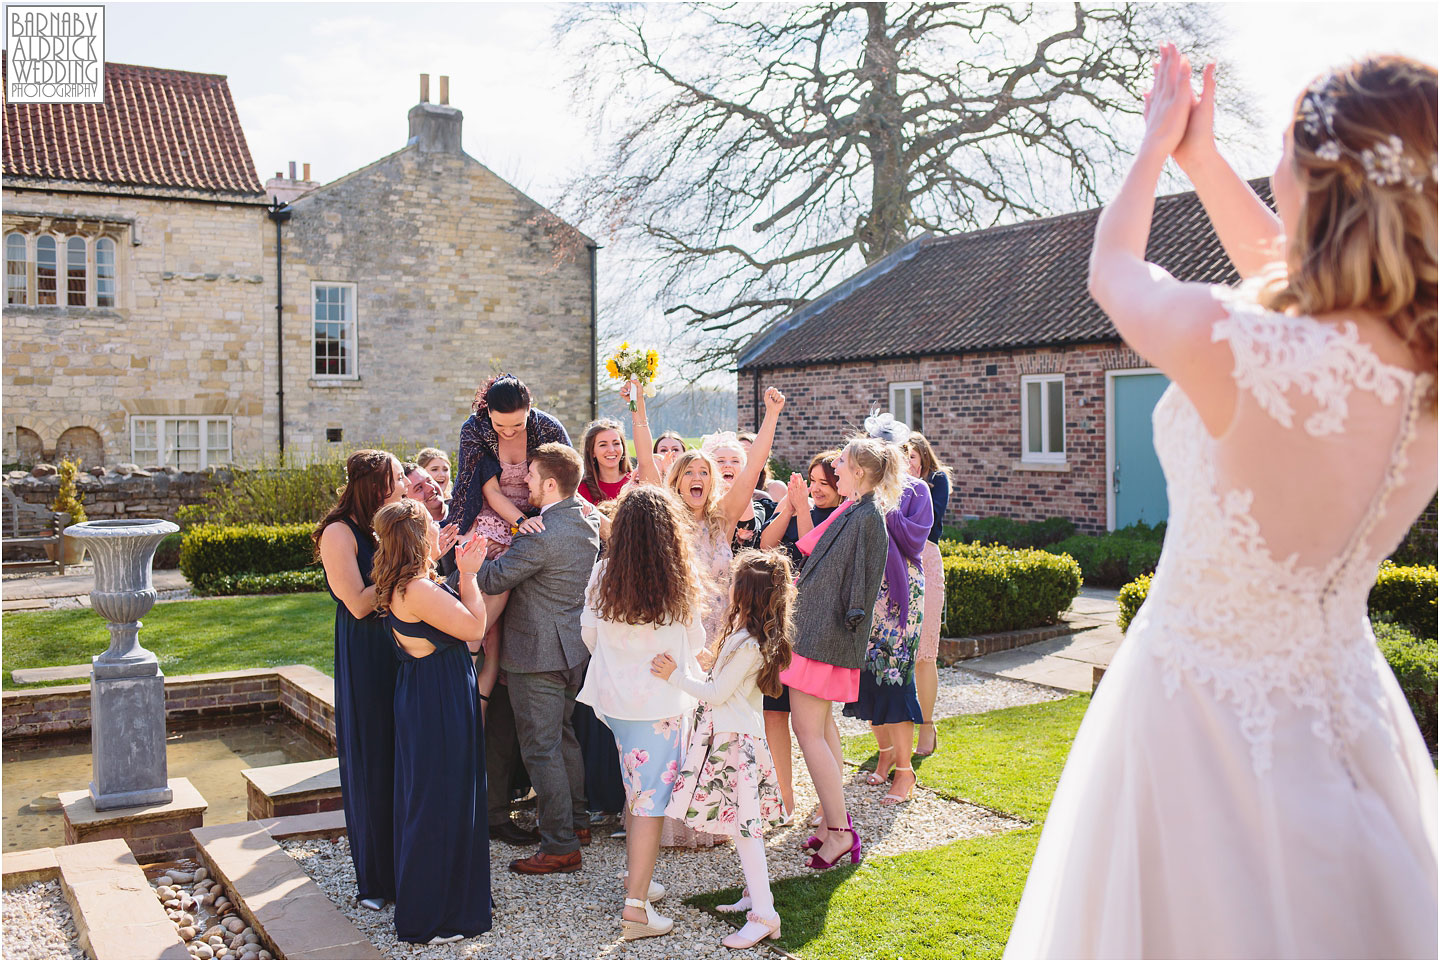 Amazing bouquet toss wedding photograph